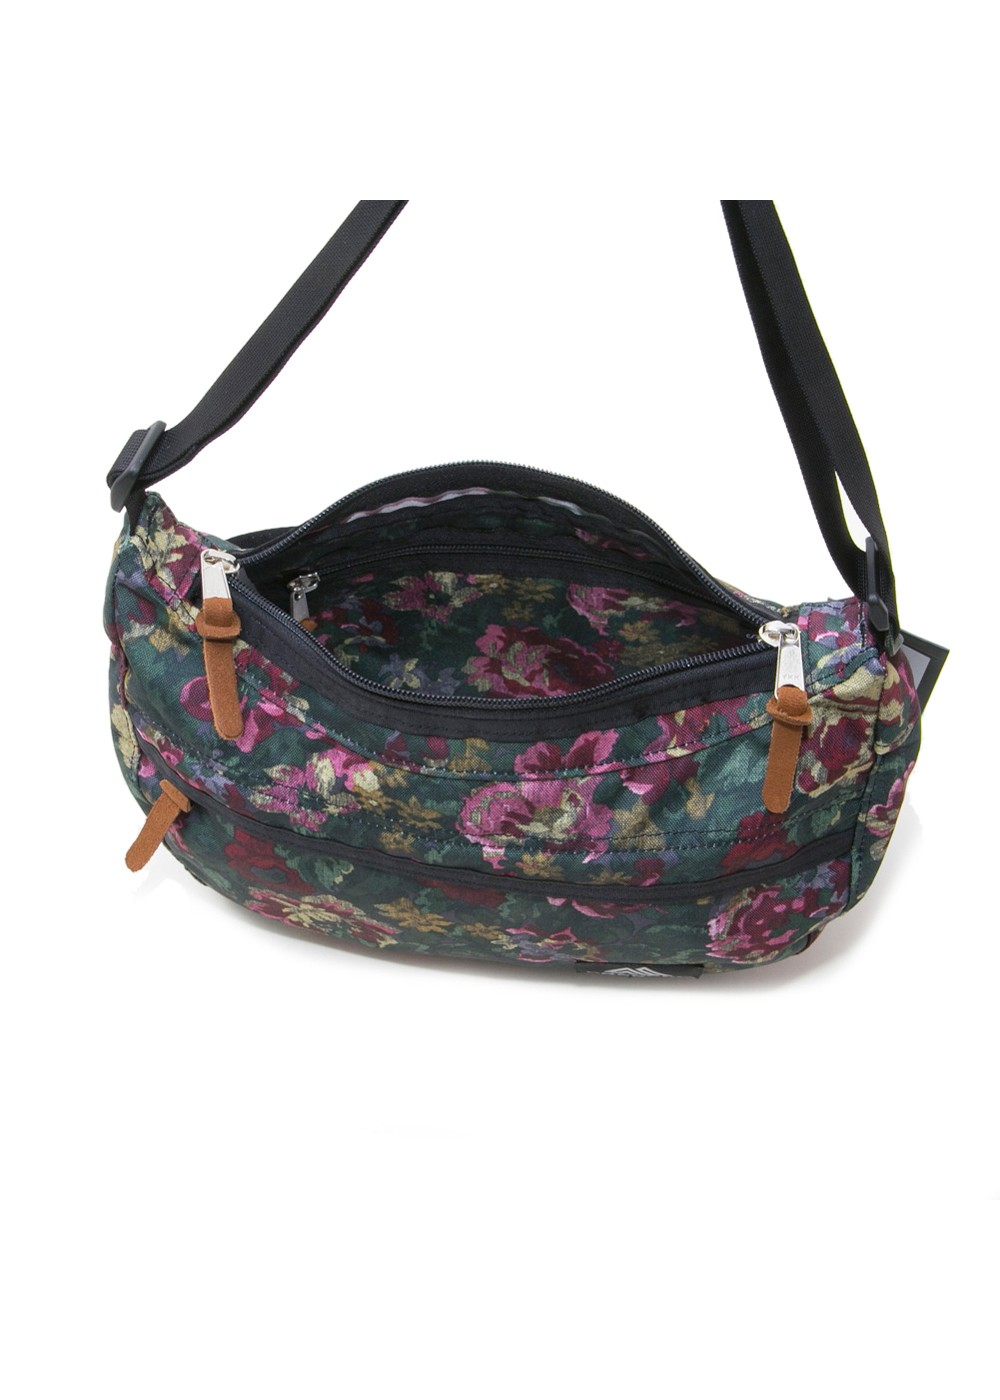 【最大31%OFF】【Price Down】SATCHEL S|GARDEN TAPESTRY|ショルダーバッグ|GREGORY